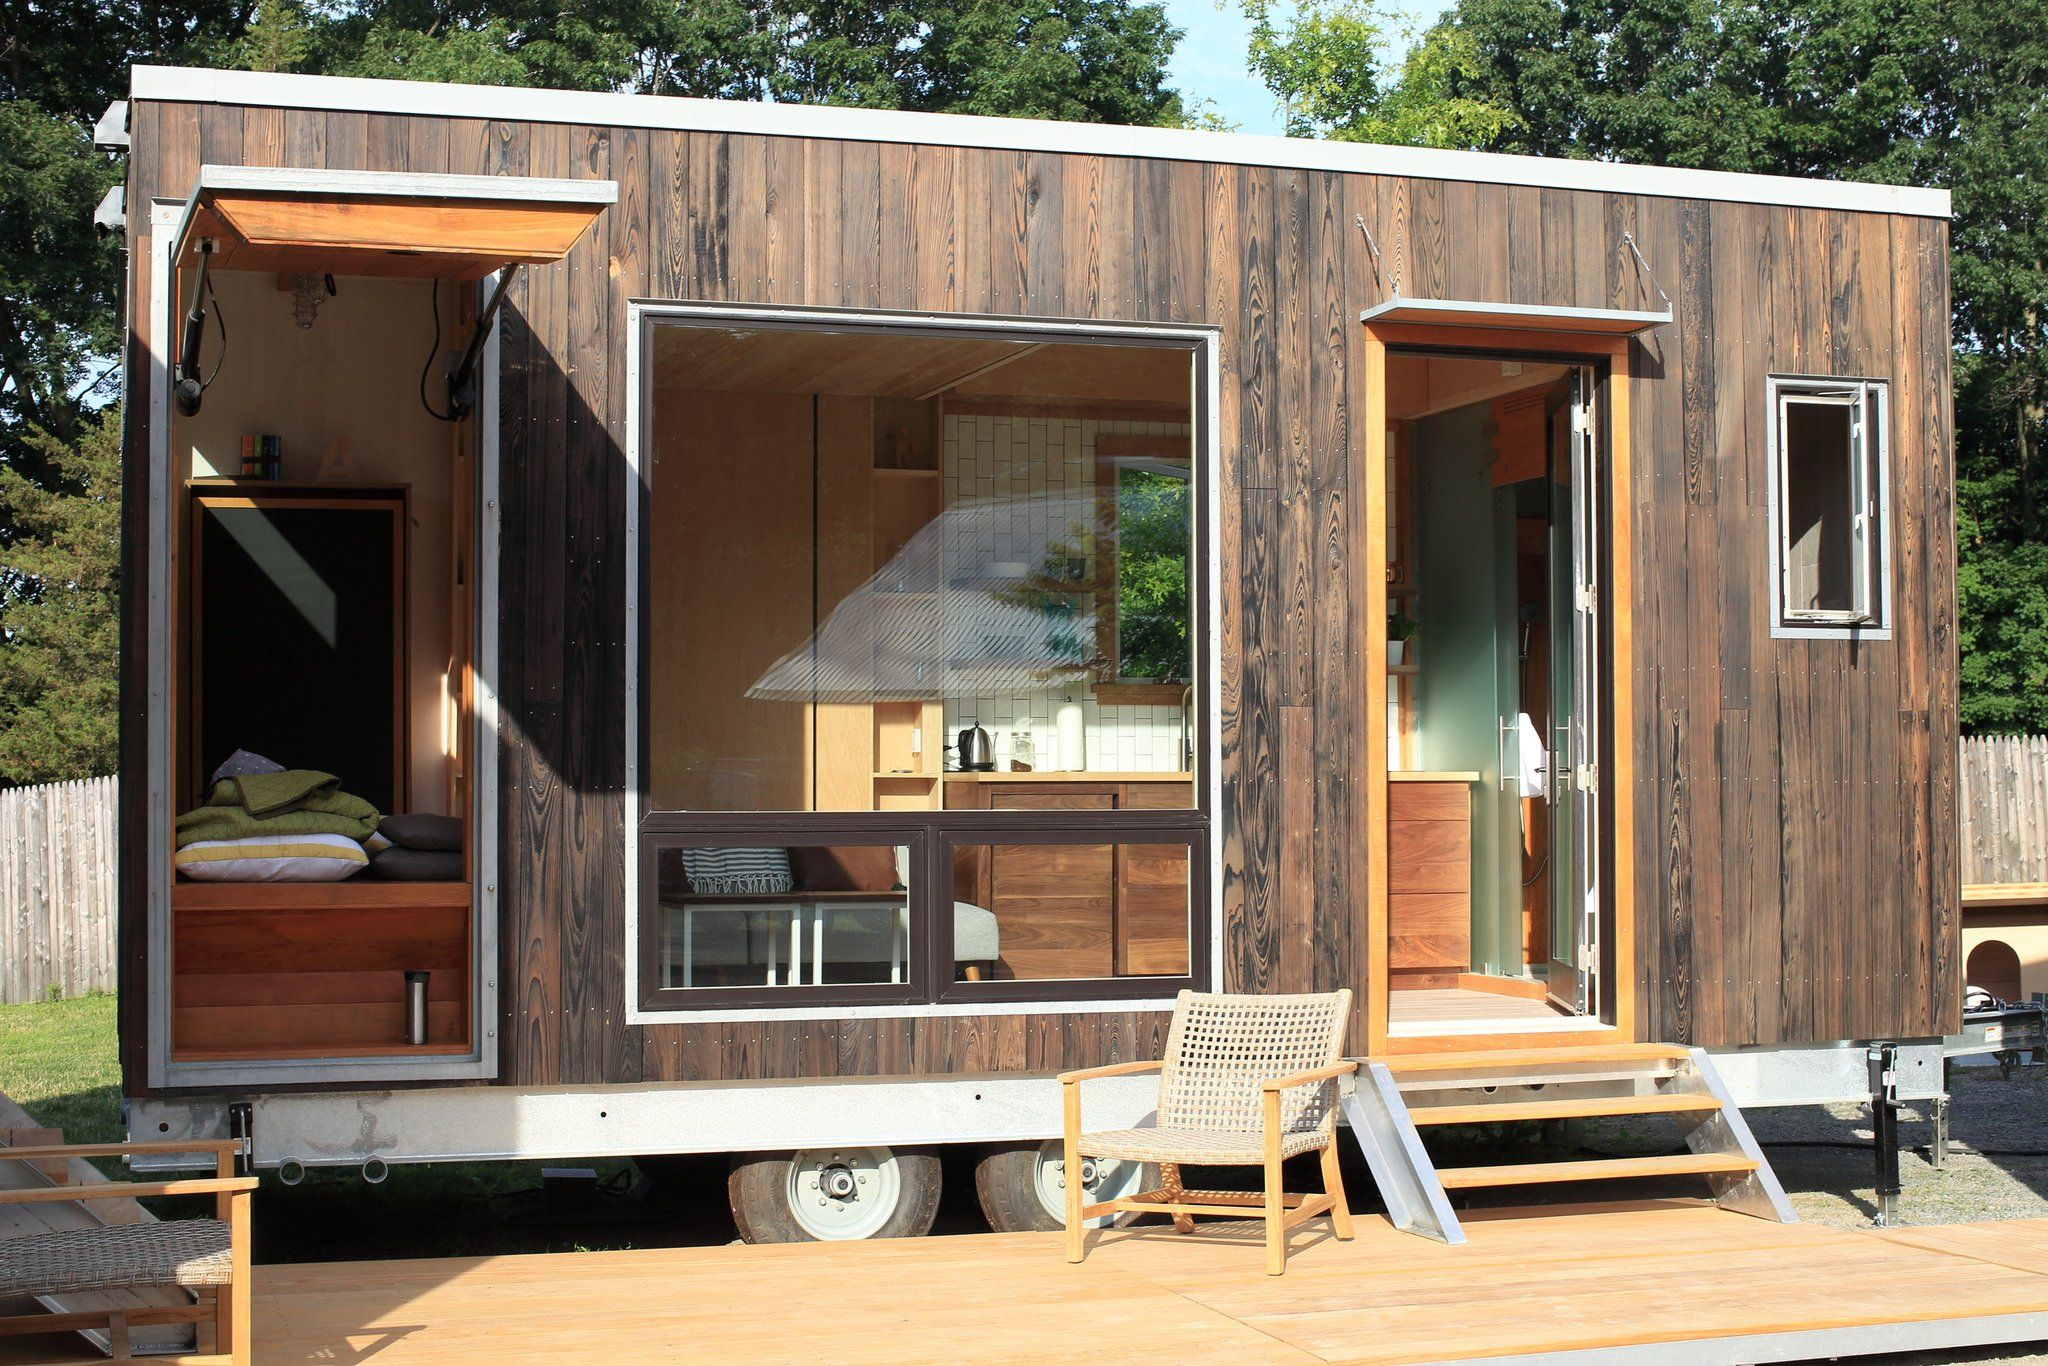 the 21 space saving sturgis tiny home by cubist on small modern home plans design for financial savings id=89000